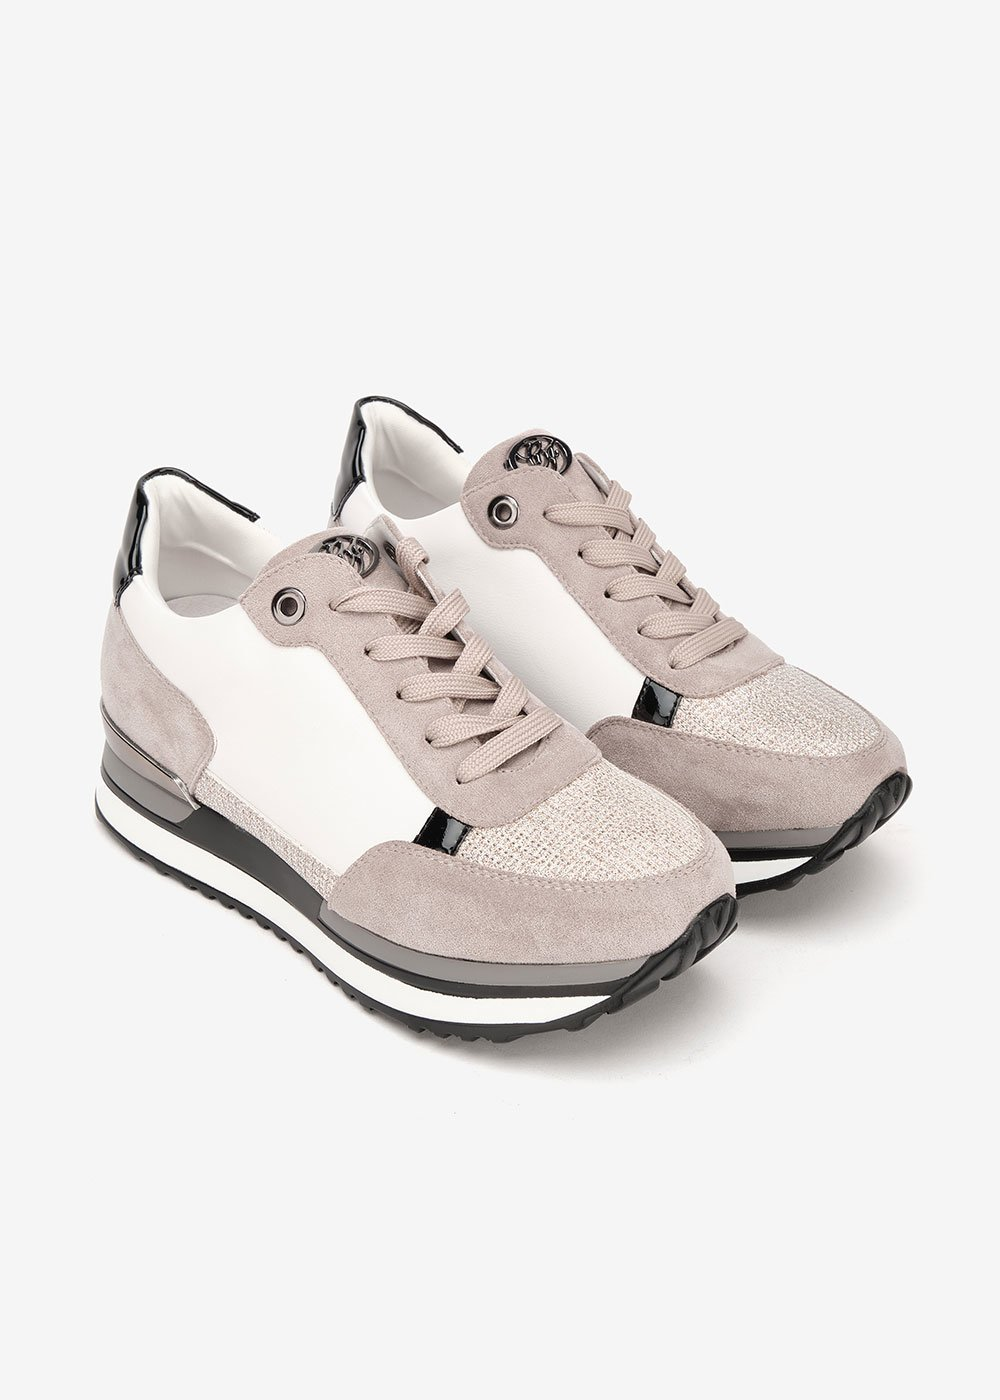 Sheryl sneakers with high crepe soles - Doeskin - Woman